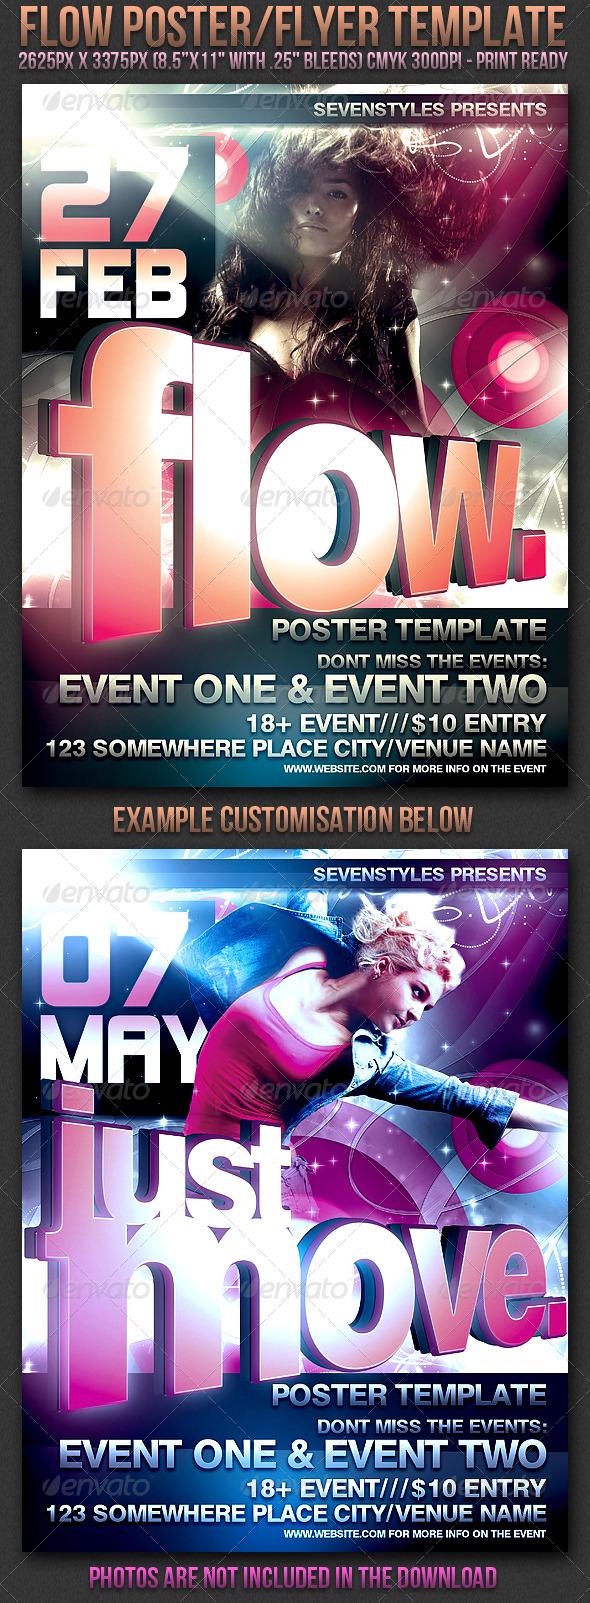 Flow Poster/Flyer Template - Clubs & Parties Events